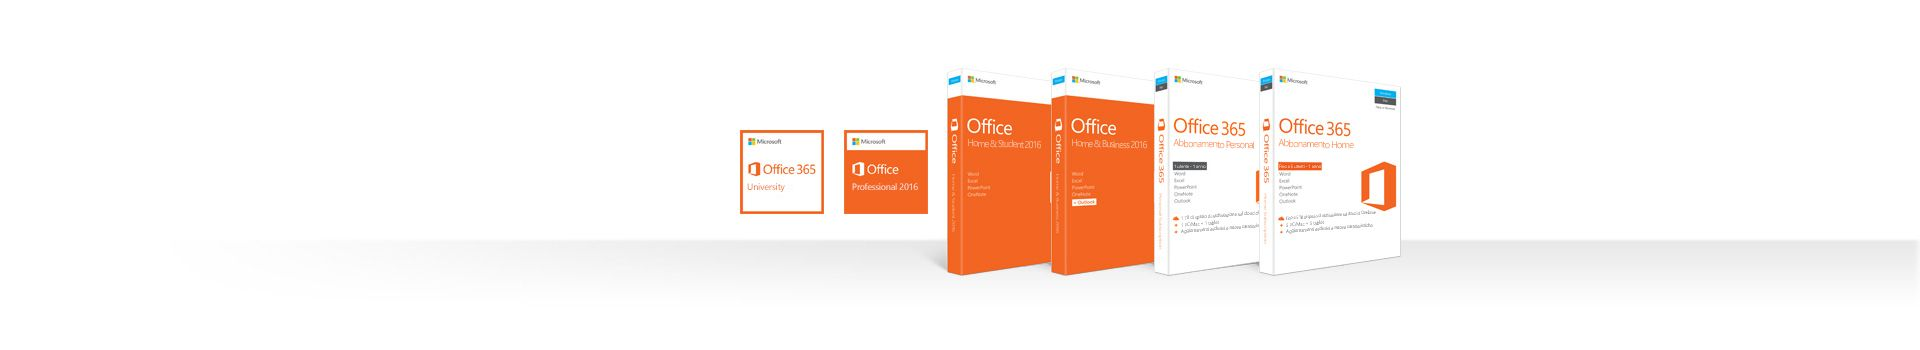 Fila di scatole di prodotti Office 2016 e Office 365 per PC